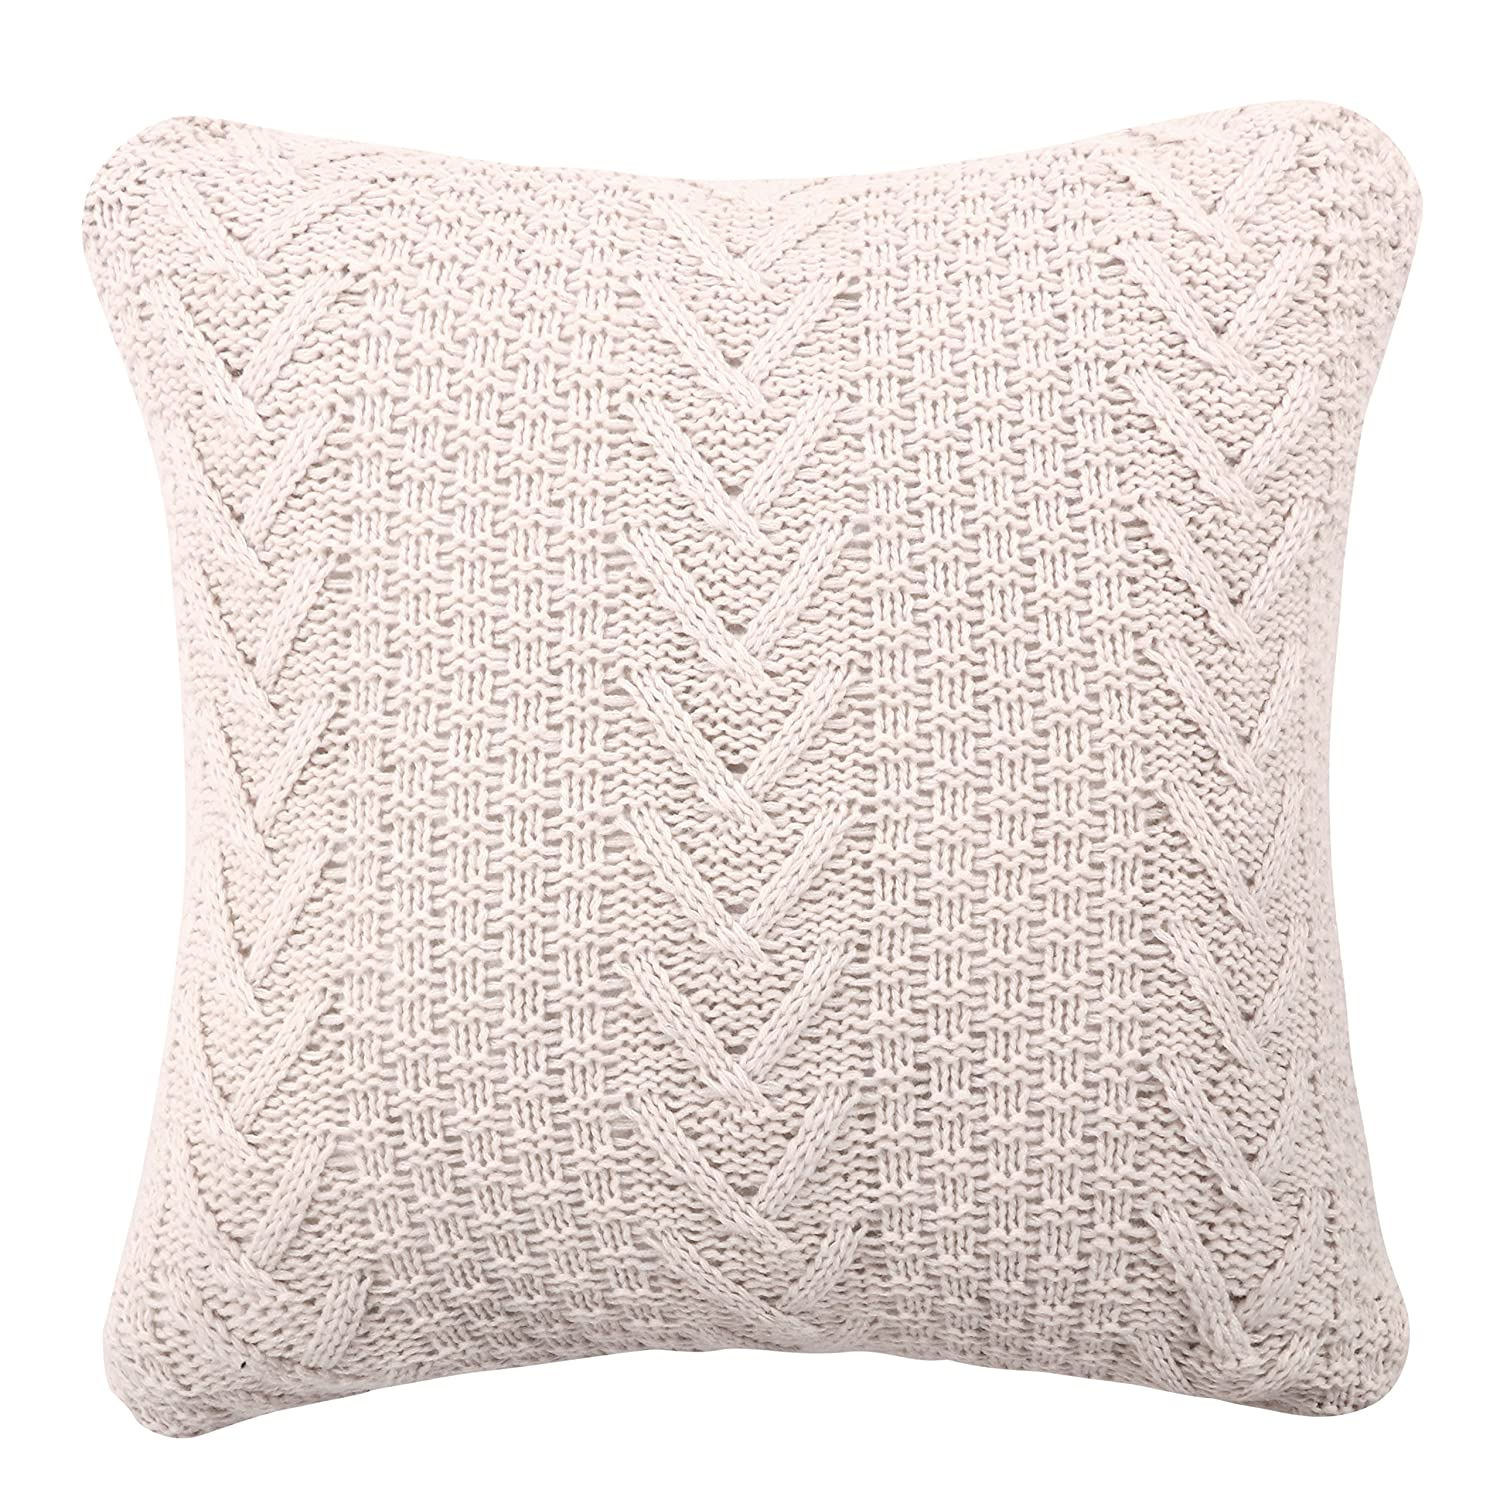 Amazon Com Famibay Knitted Pilllow Covers Decorative Cotton